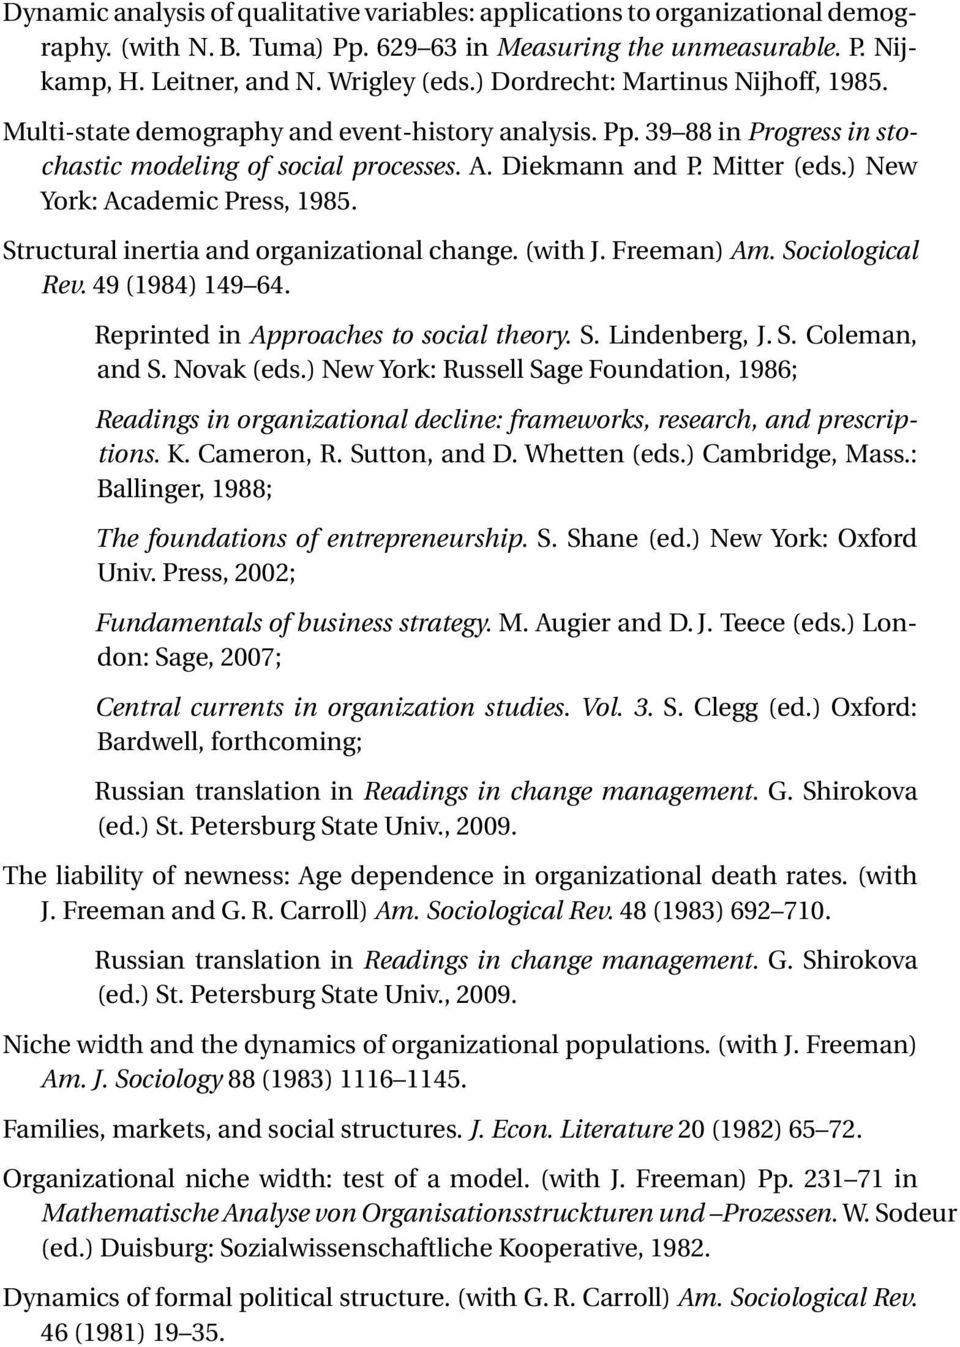 ) New York: Academic Press, 1985. Structural inertia and organizational change. (with J. Freeman) Am. Sociological Rev. 49 (1984) 149 64. Reprinted in Approaches to social theory. S. Lindenberg, J. S. Coleman, and S.